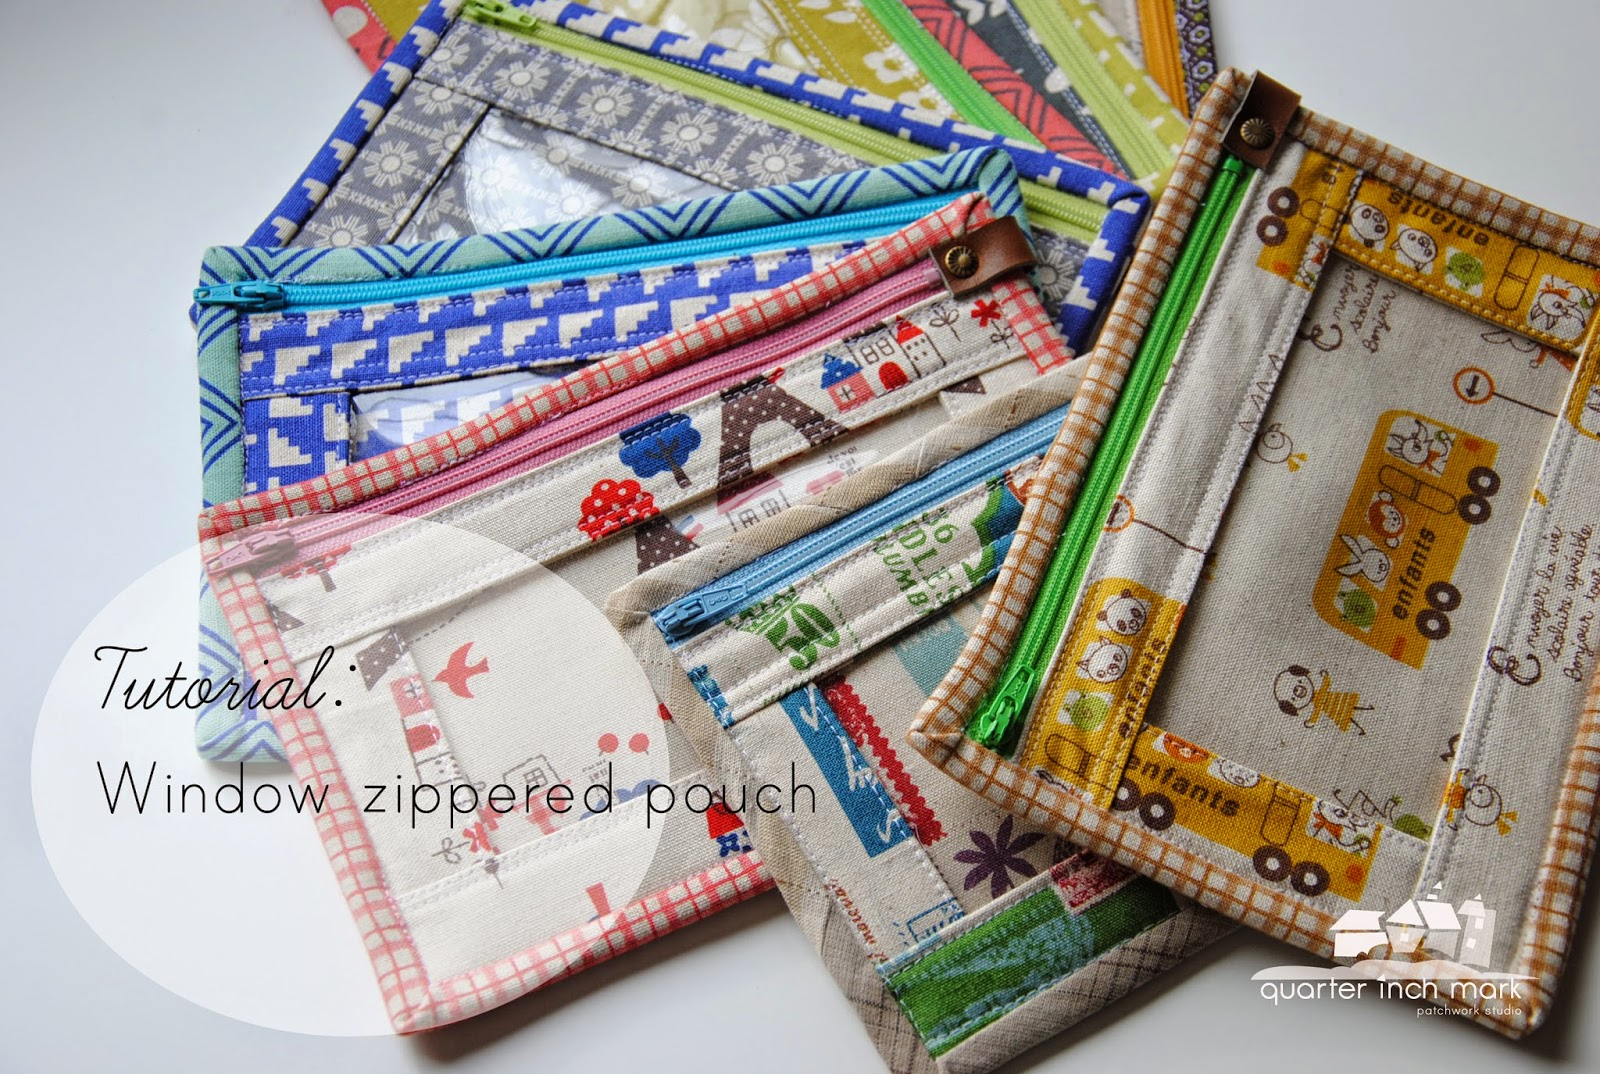 Pattern For Book Cover With Zipper : Quot mark tutorial window zippered pouches